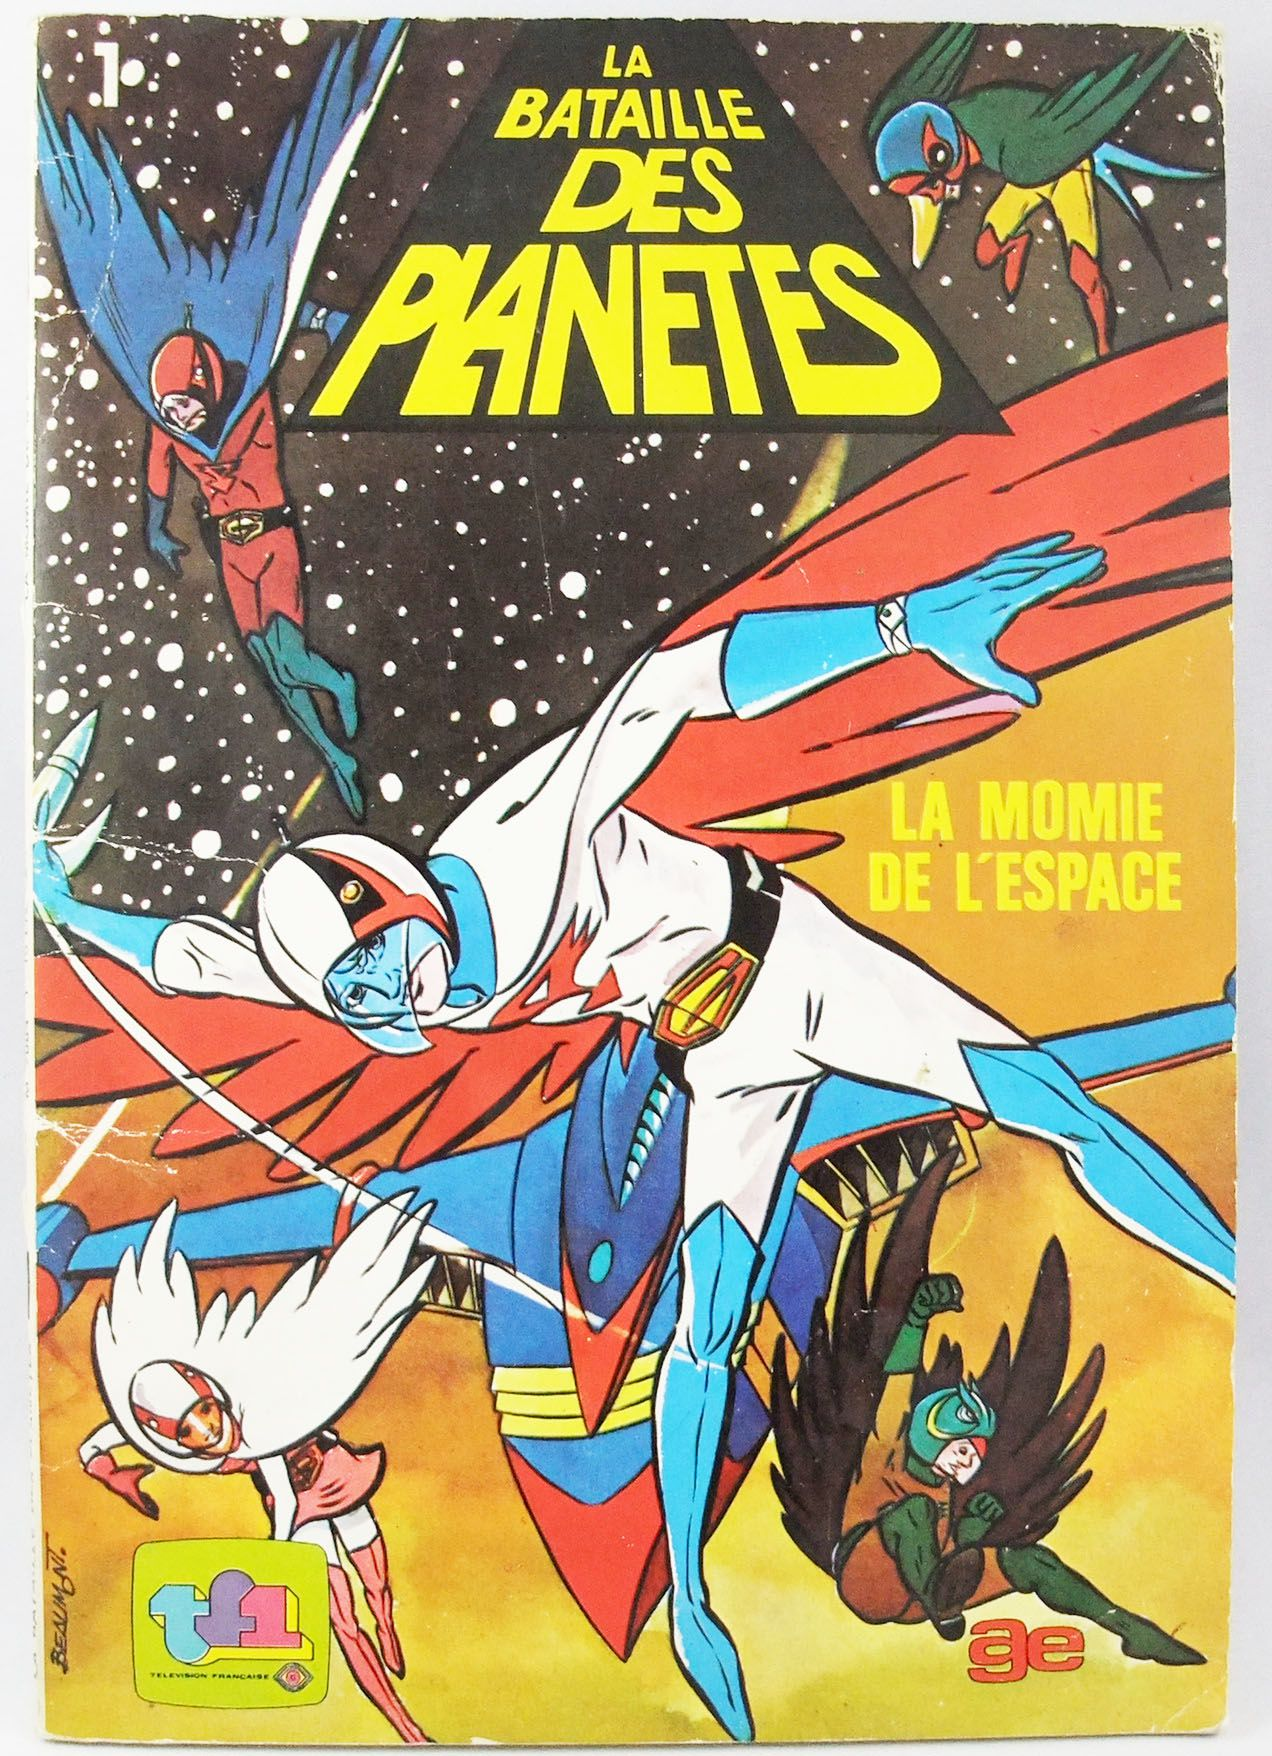 Battle of the Planets - AGE Editions comic book - The Space Mummy